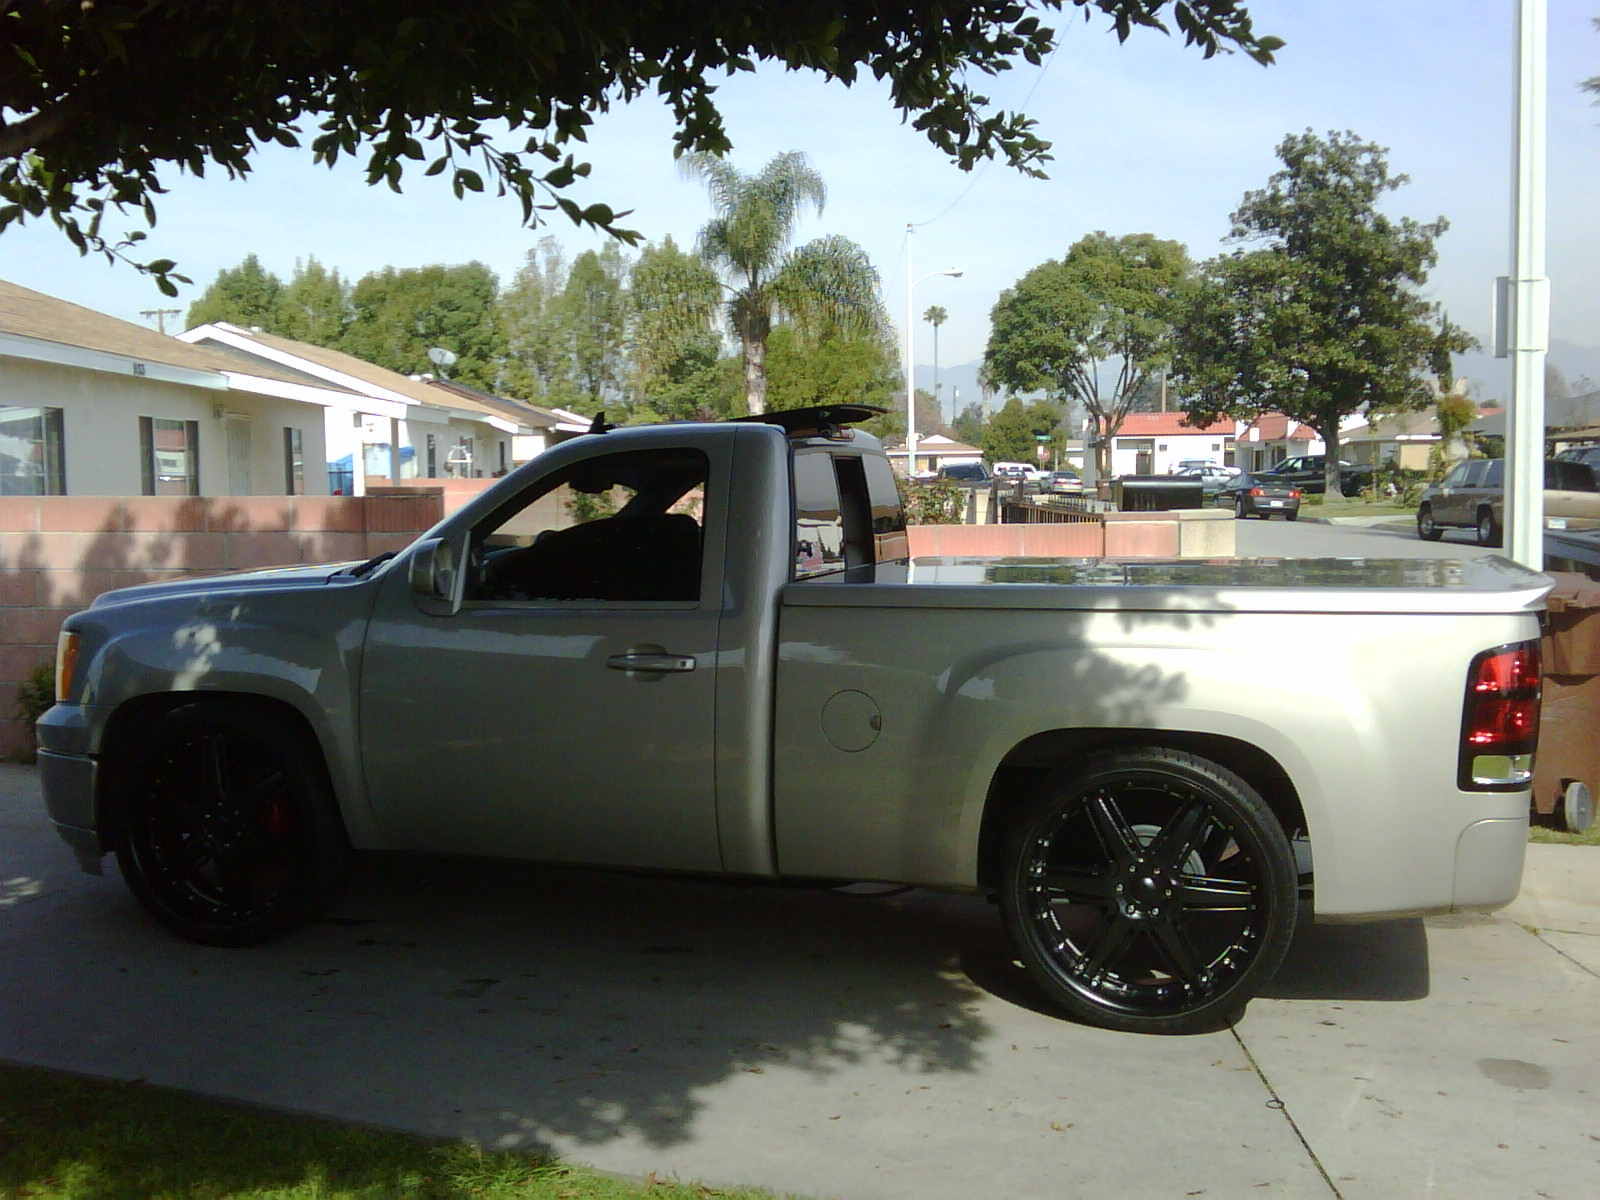 Sickest Shorty on 26s!!!